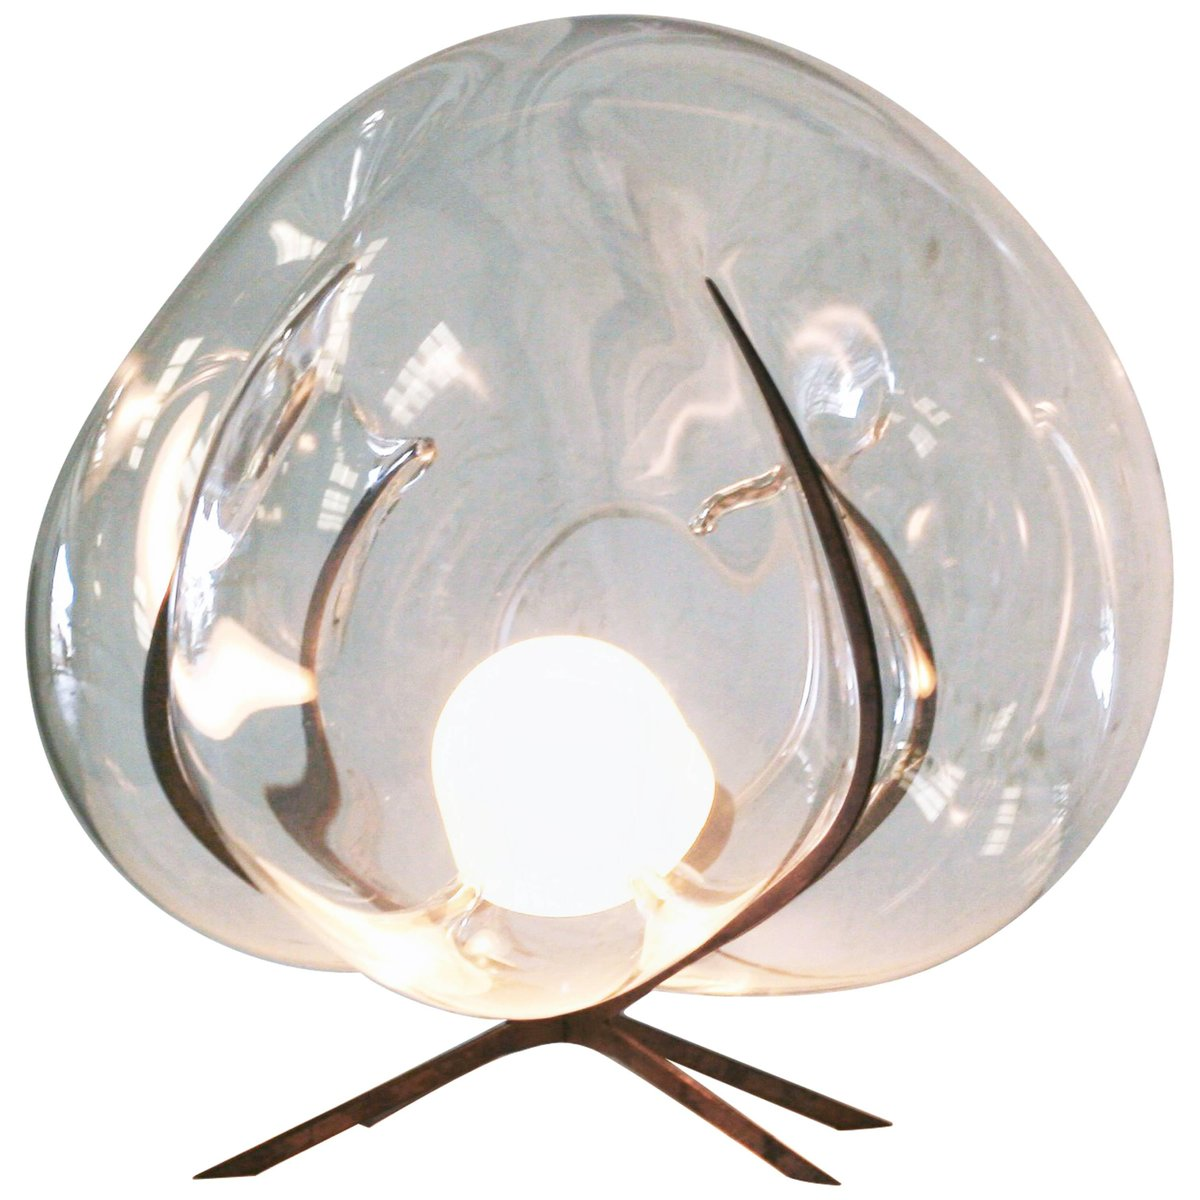 Exhale Crystal Glass Standing Light by Catie Newell